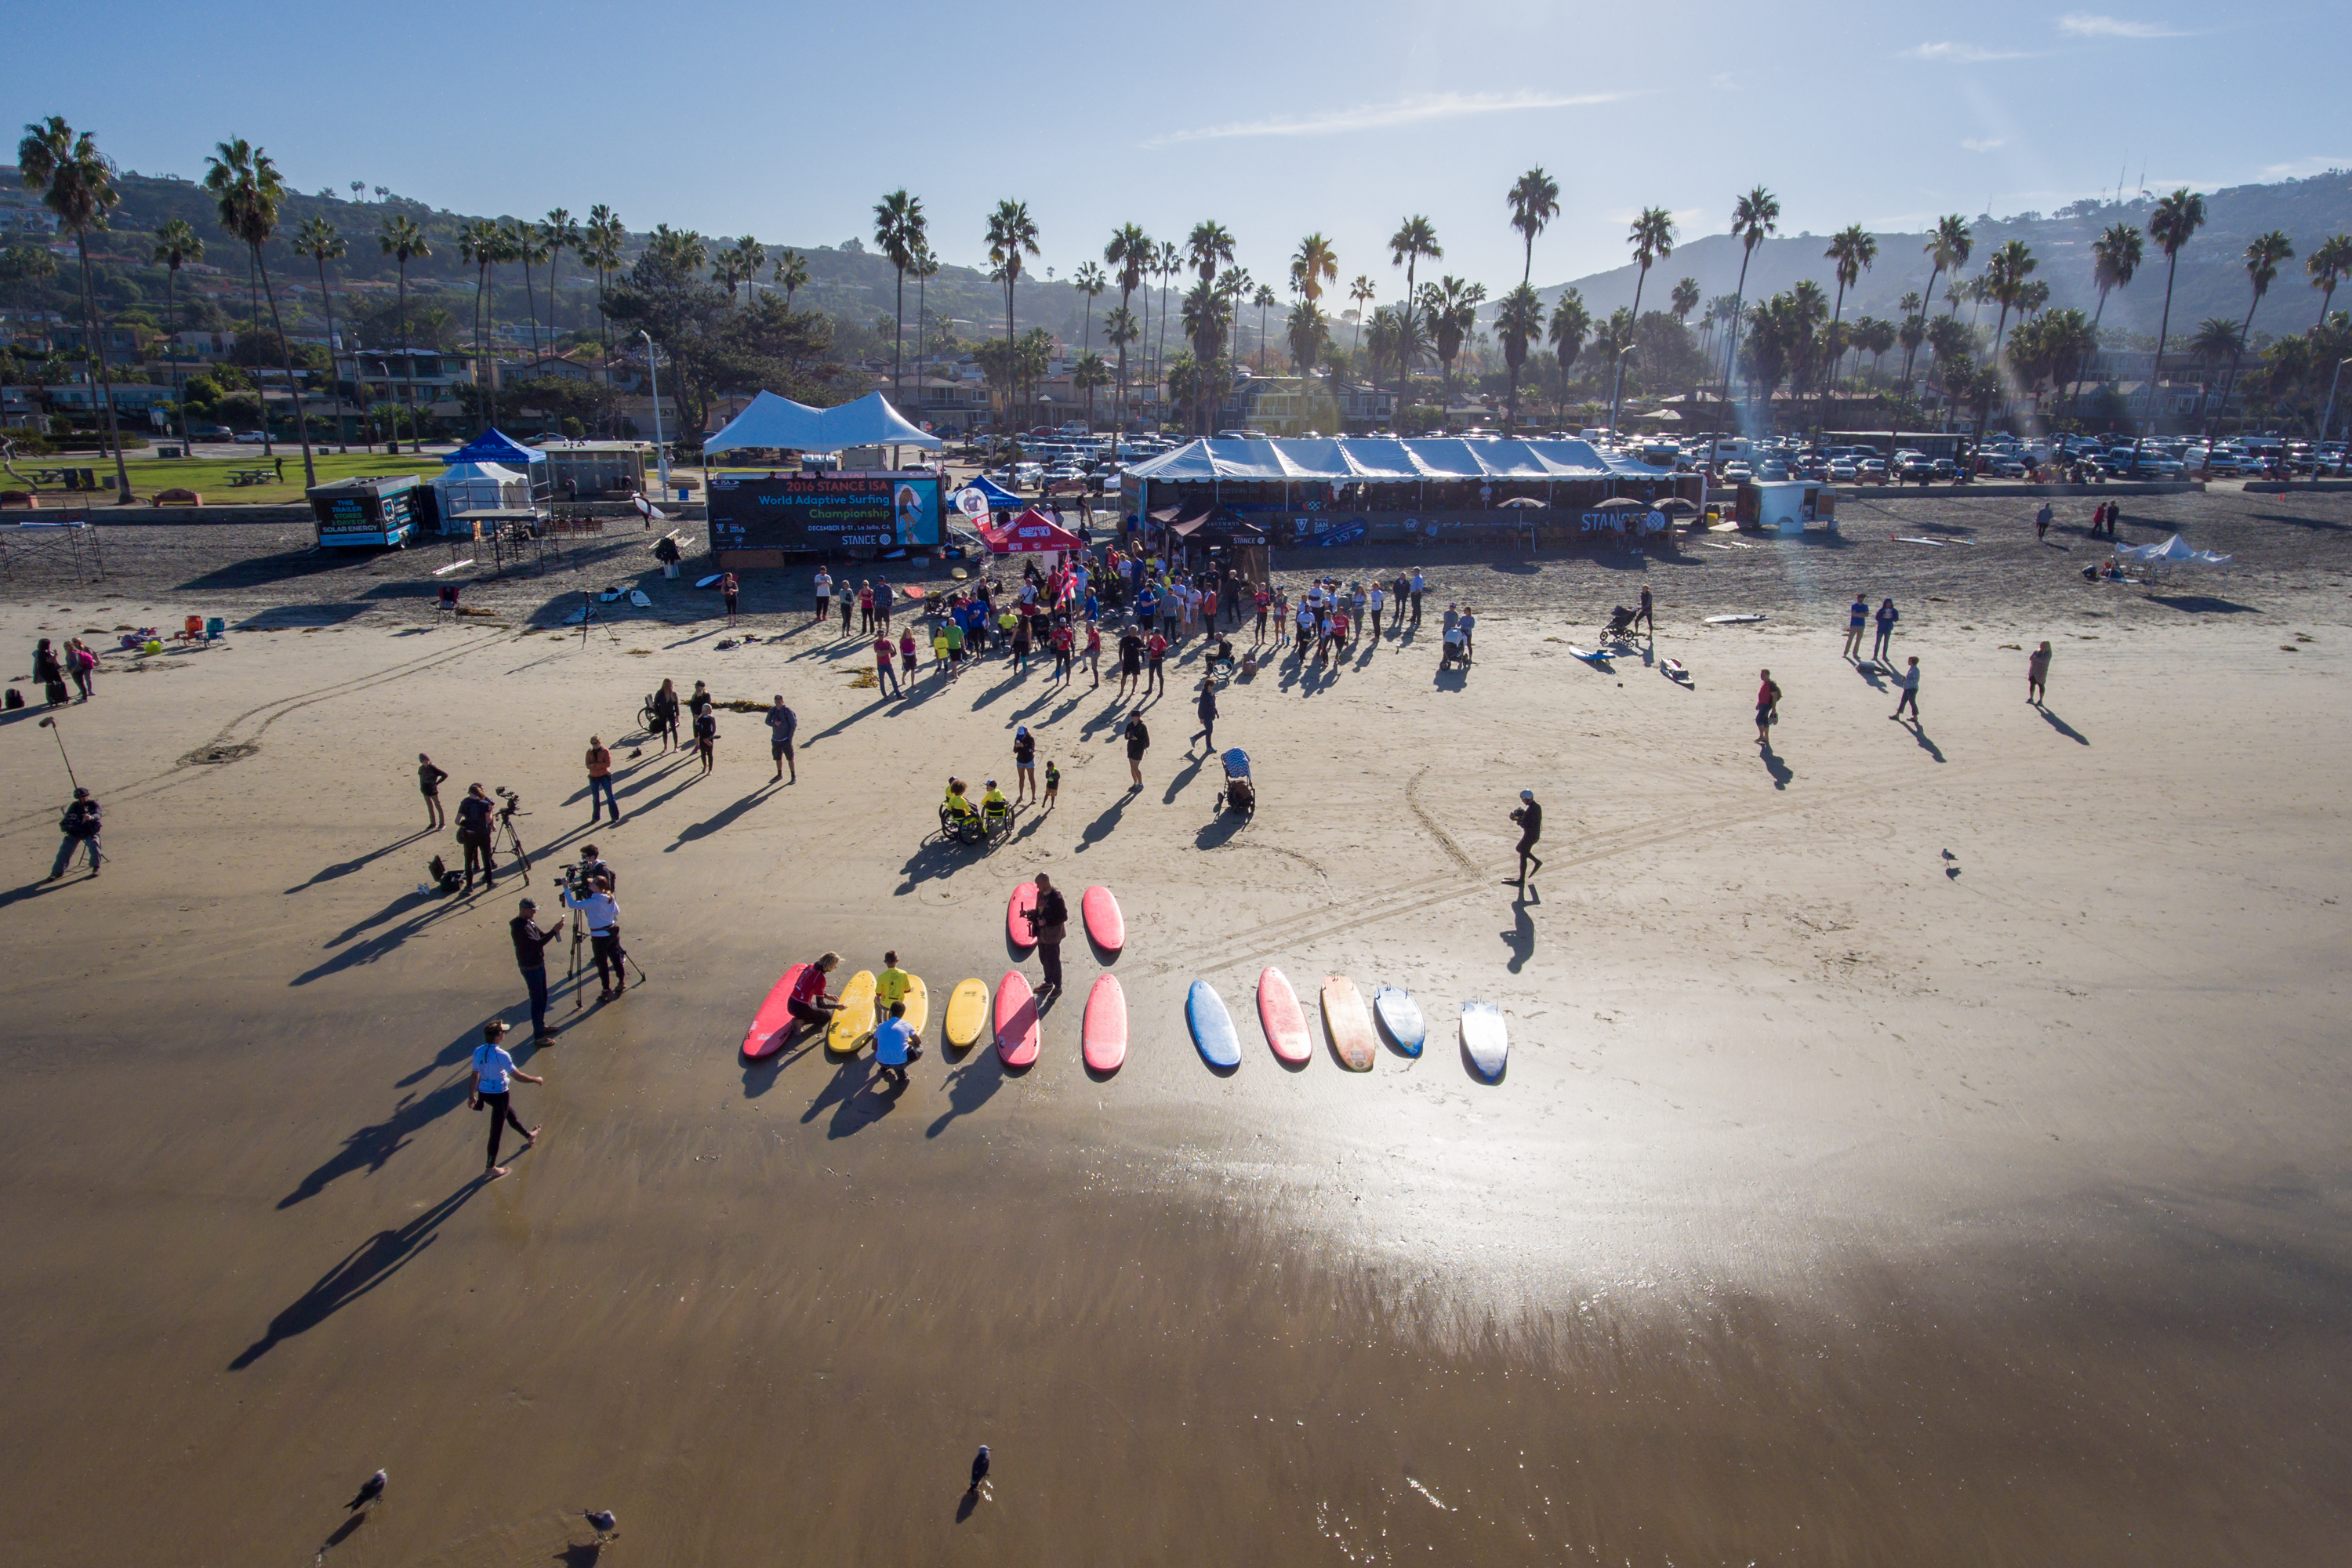 Surfboards and surfers